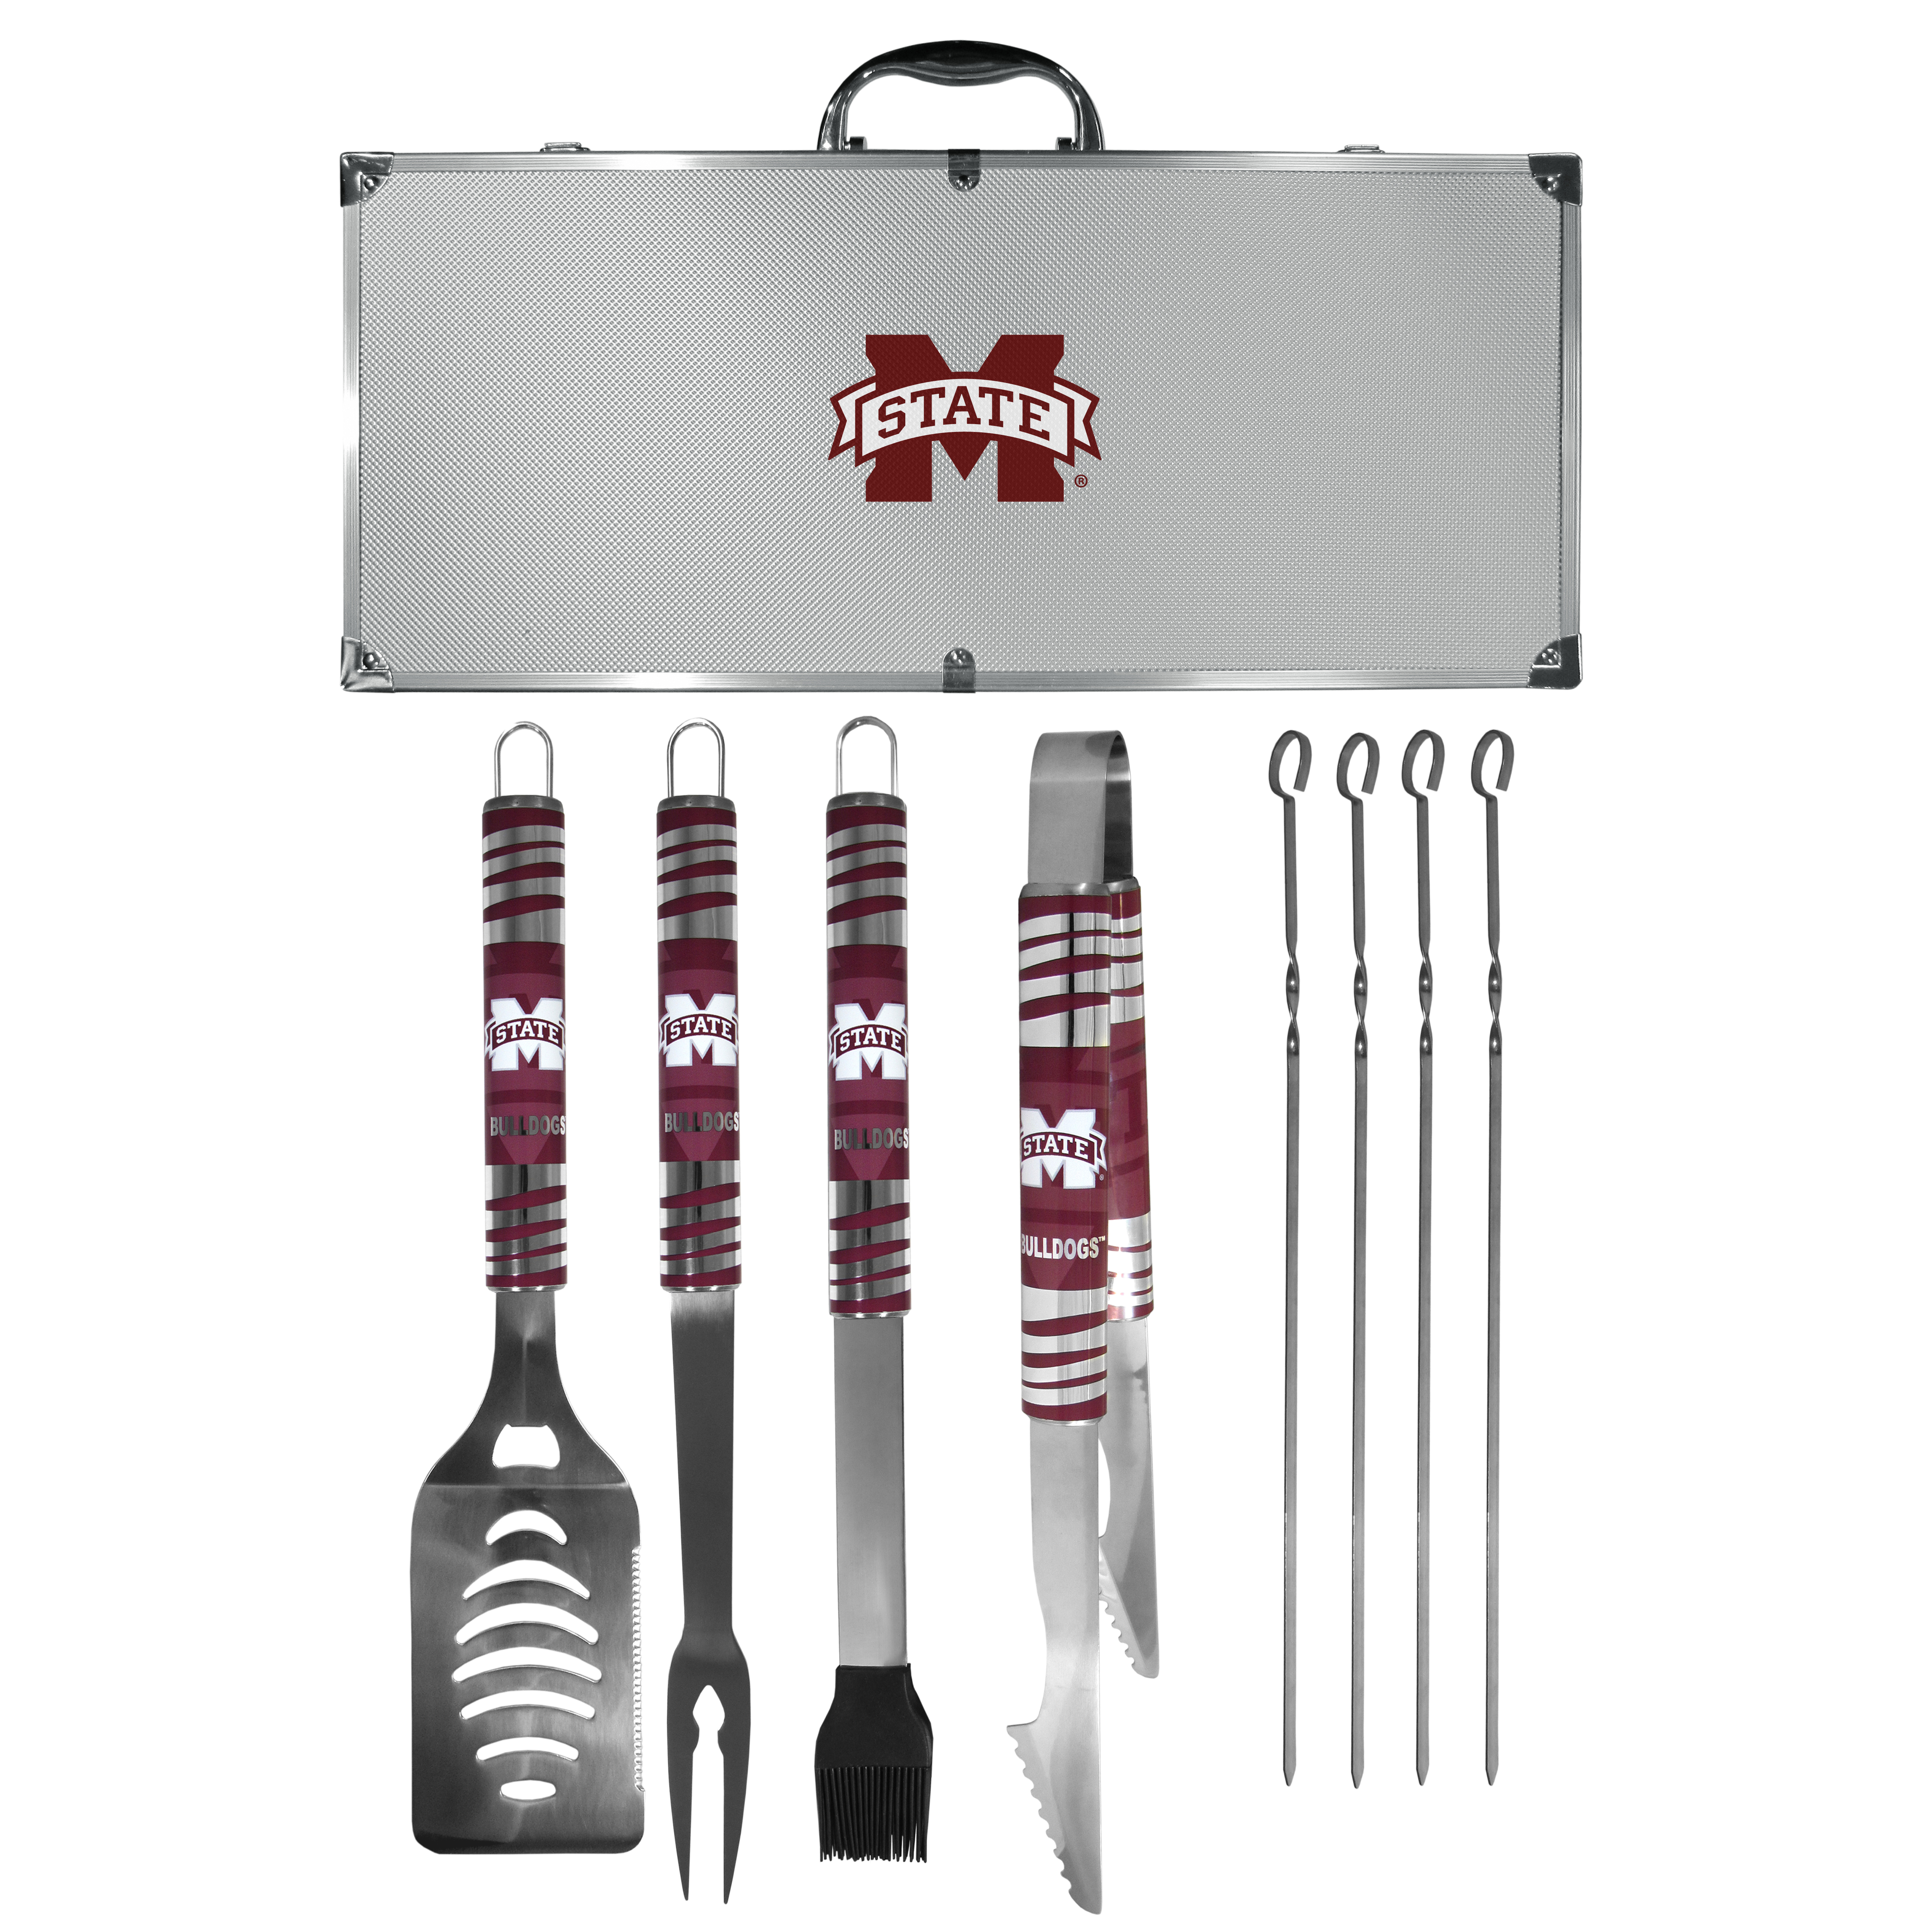 Mississippi St. Bulldogs 8 pc Tailgater BBQ Set - This is the ultimate Mississippi St. Bulldogs tailgate accessory! The high quality, 420 grade stainless steel tools are durable and well-made enough to make even the pickiest grill master smile. This complete grill accessory kit includes; 4 skewers, spatula with bottle opener and serrated knife edge, basting brush, tongs and a fork. The 18 inch metal carrying case is perfect for great outdoor use making grilling an ease while camping, tailgating or while having a game day party on your patio. The tools are 17 inches long and feature vivid team graphics. The metal case features a large team emblem with exceptional detail. This high-end men's gift is sure to be a hit as a present on Father's Day or Christmas.